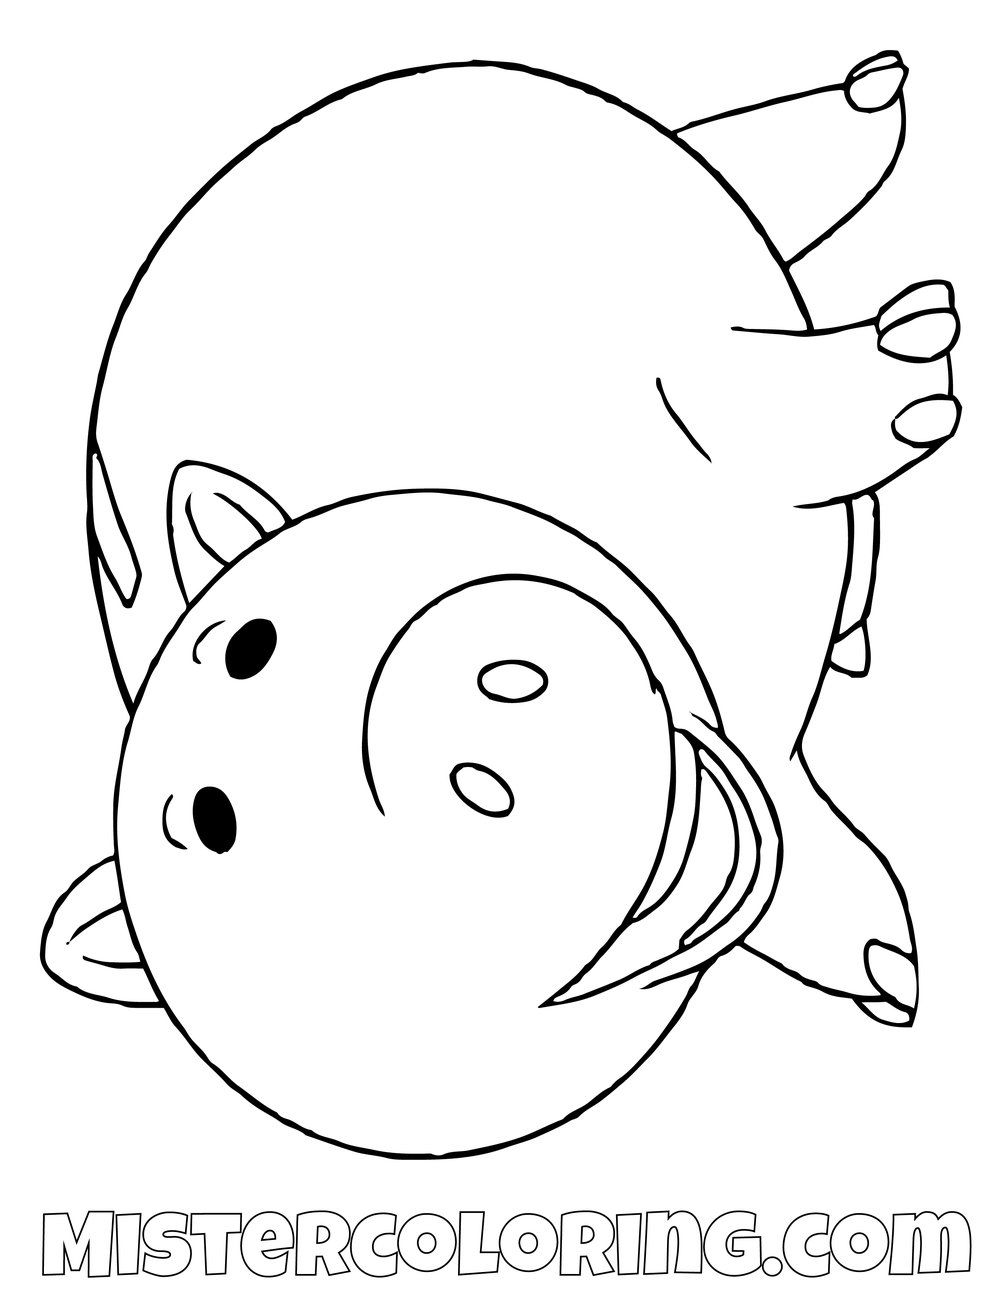 Green Eggs And Ham Coloring Page Inspirational Dr Seuss Green Eggs